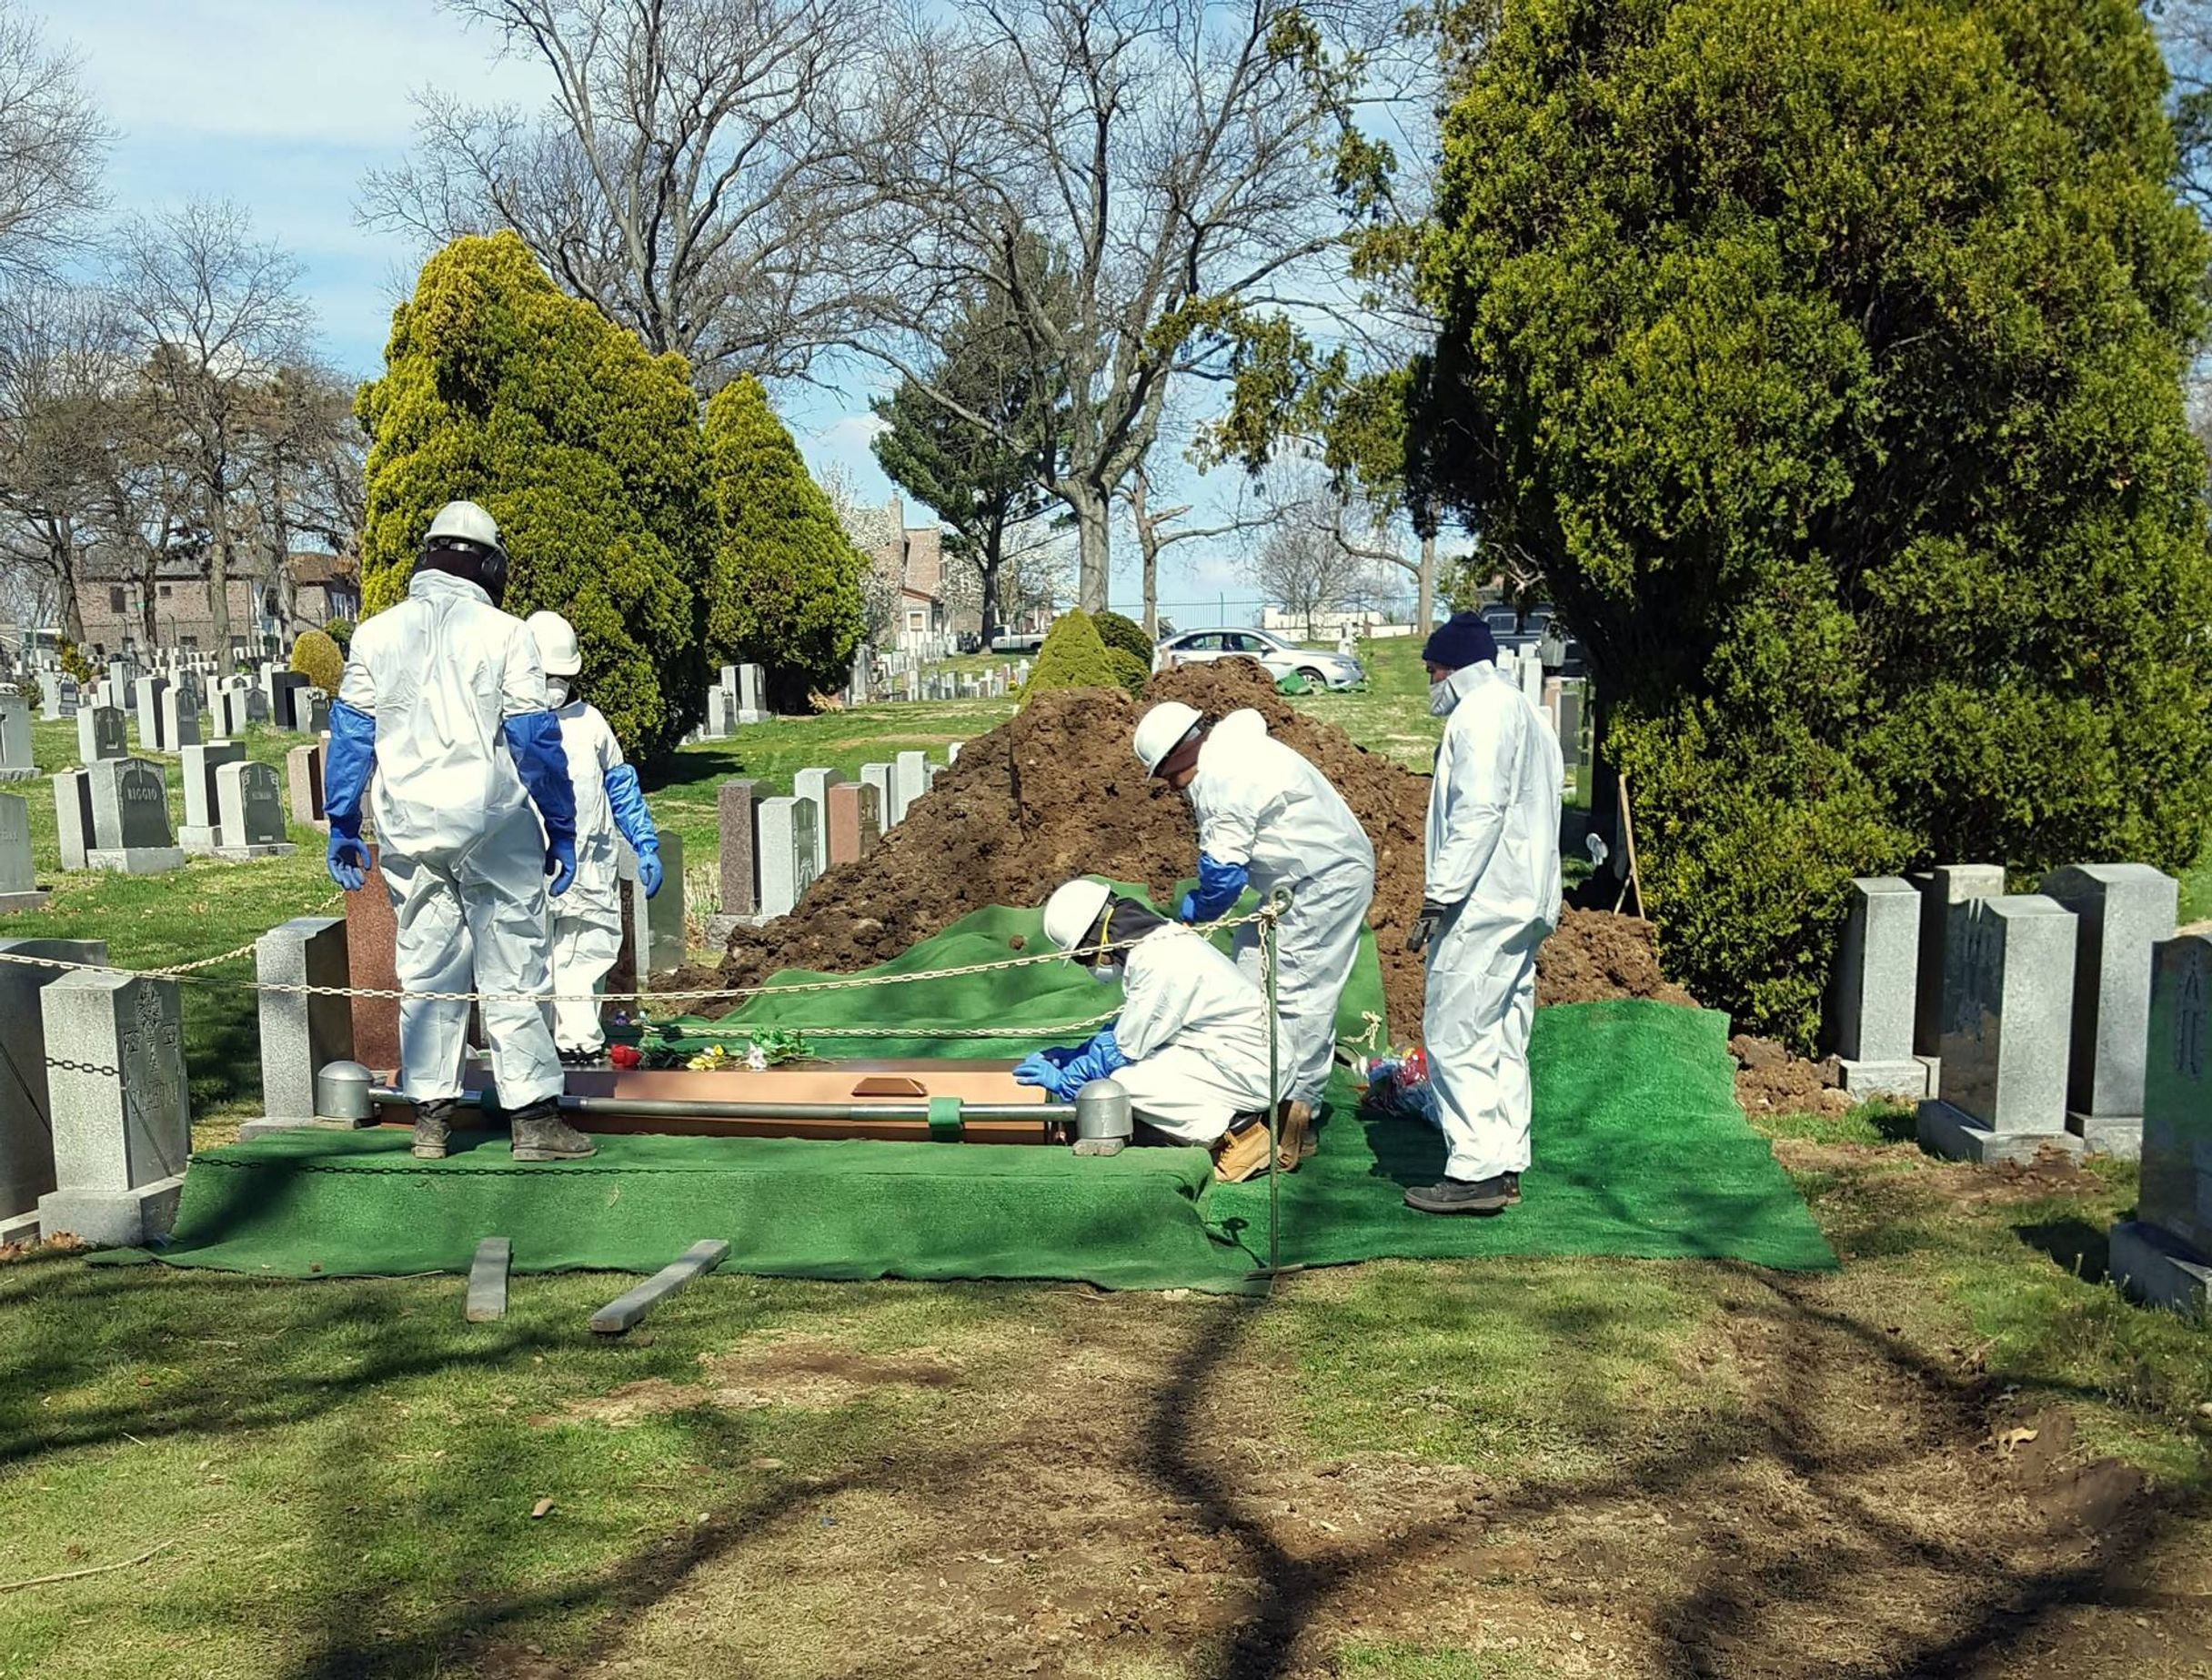 Gravediggers in protective clothing at a recent New York City-area funeral